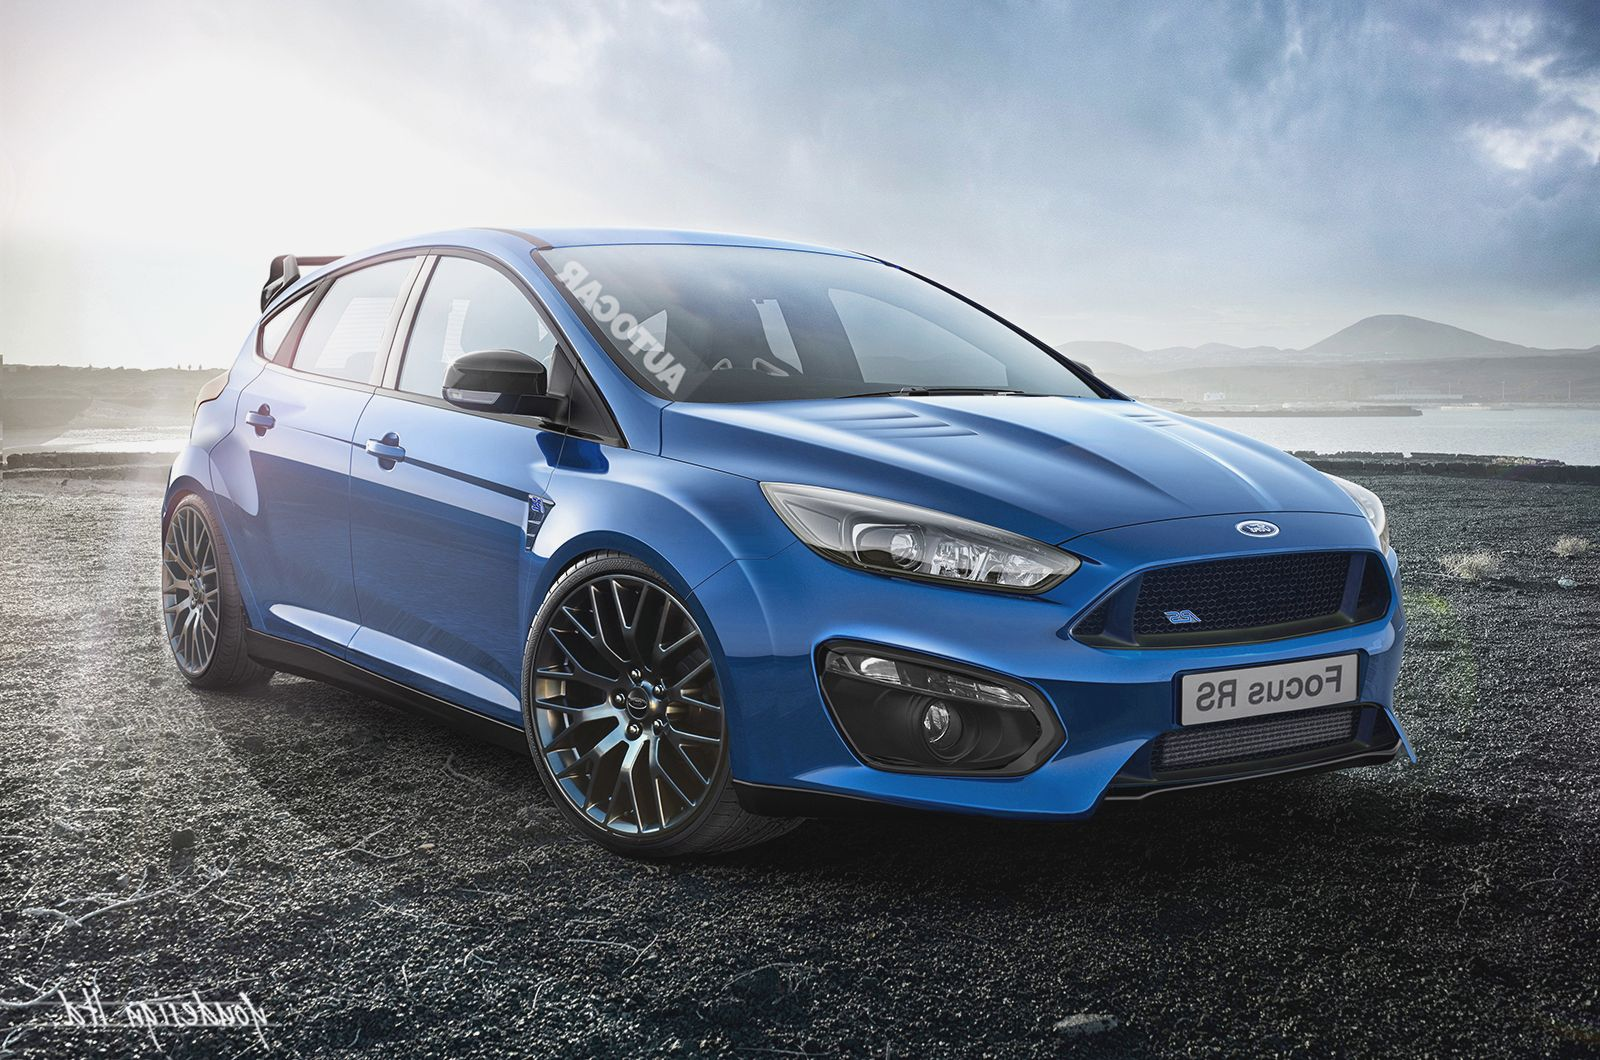 49 Ford Focus Rs Wallpaper On Wallpapersafari